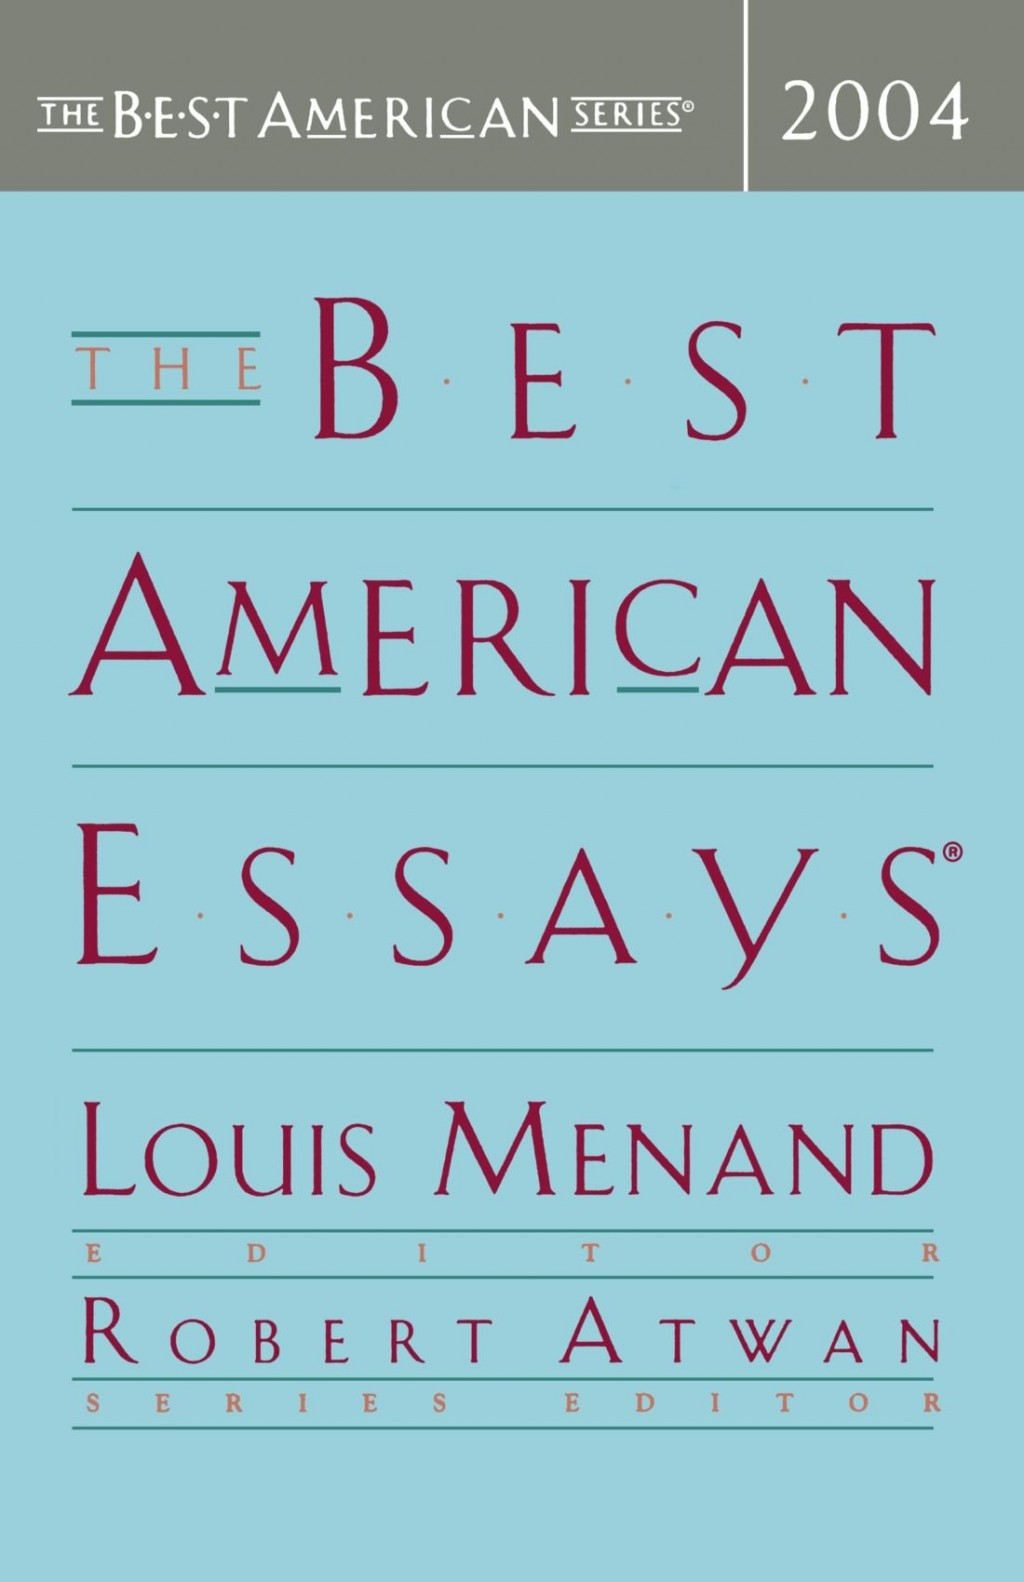 015 Essay Example The Best American Essays Wonderful 2013 Pdf Download Of Century Sparknotes 2017 Large